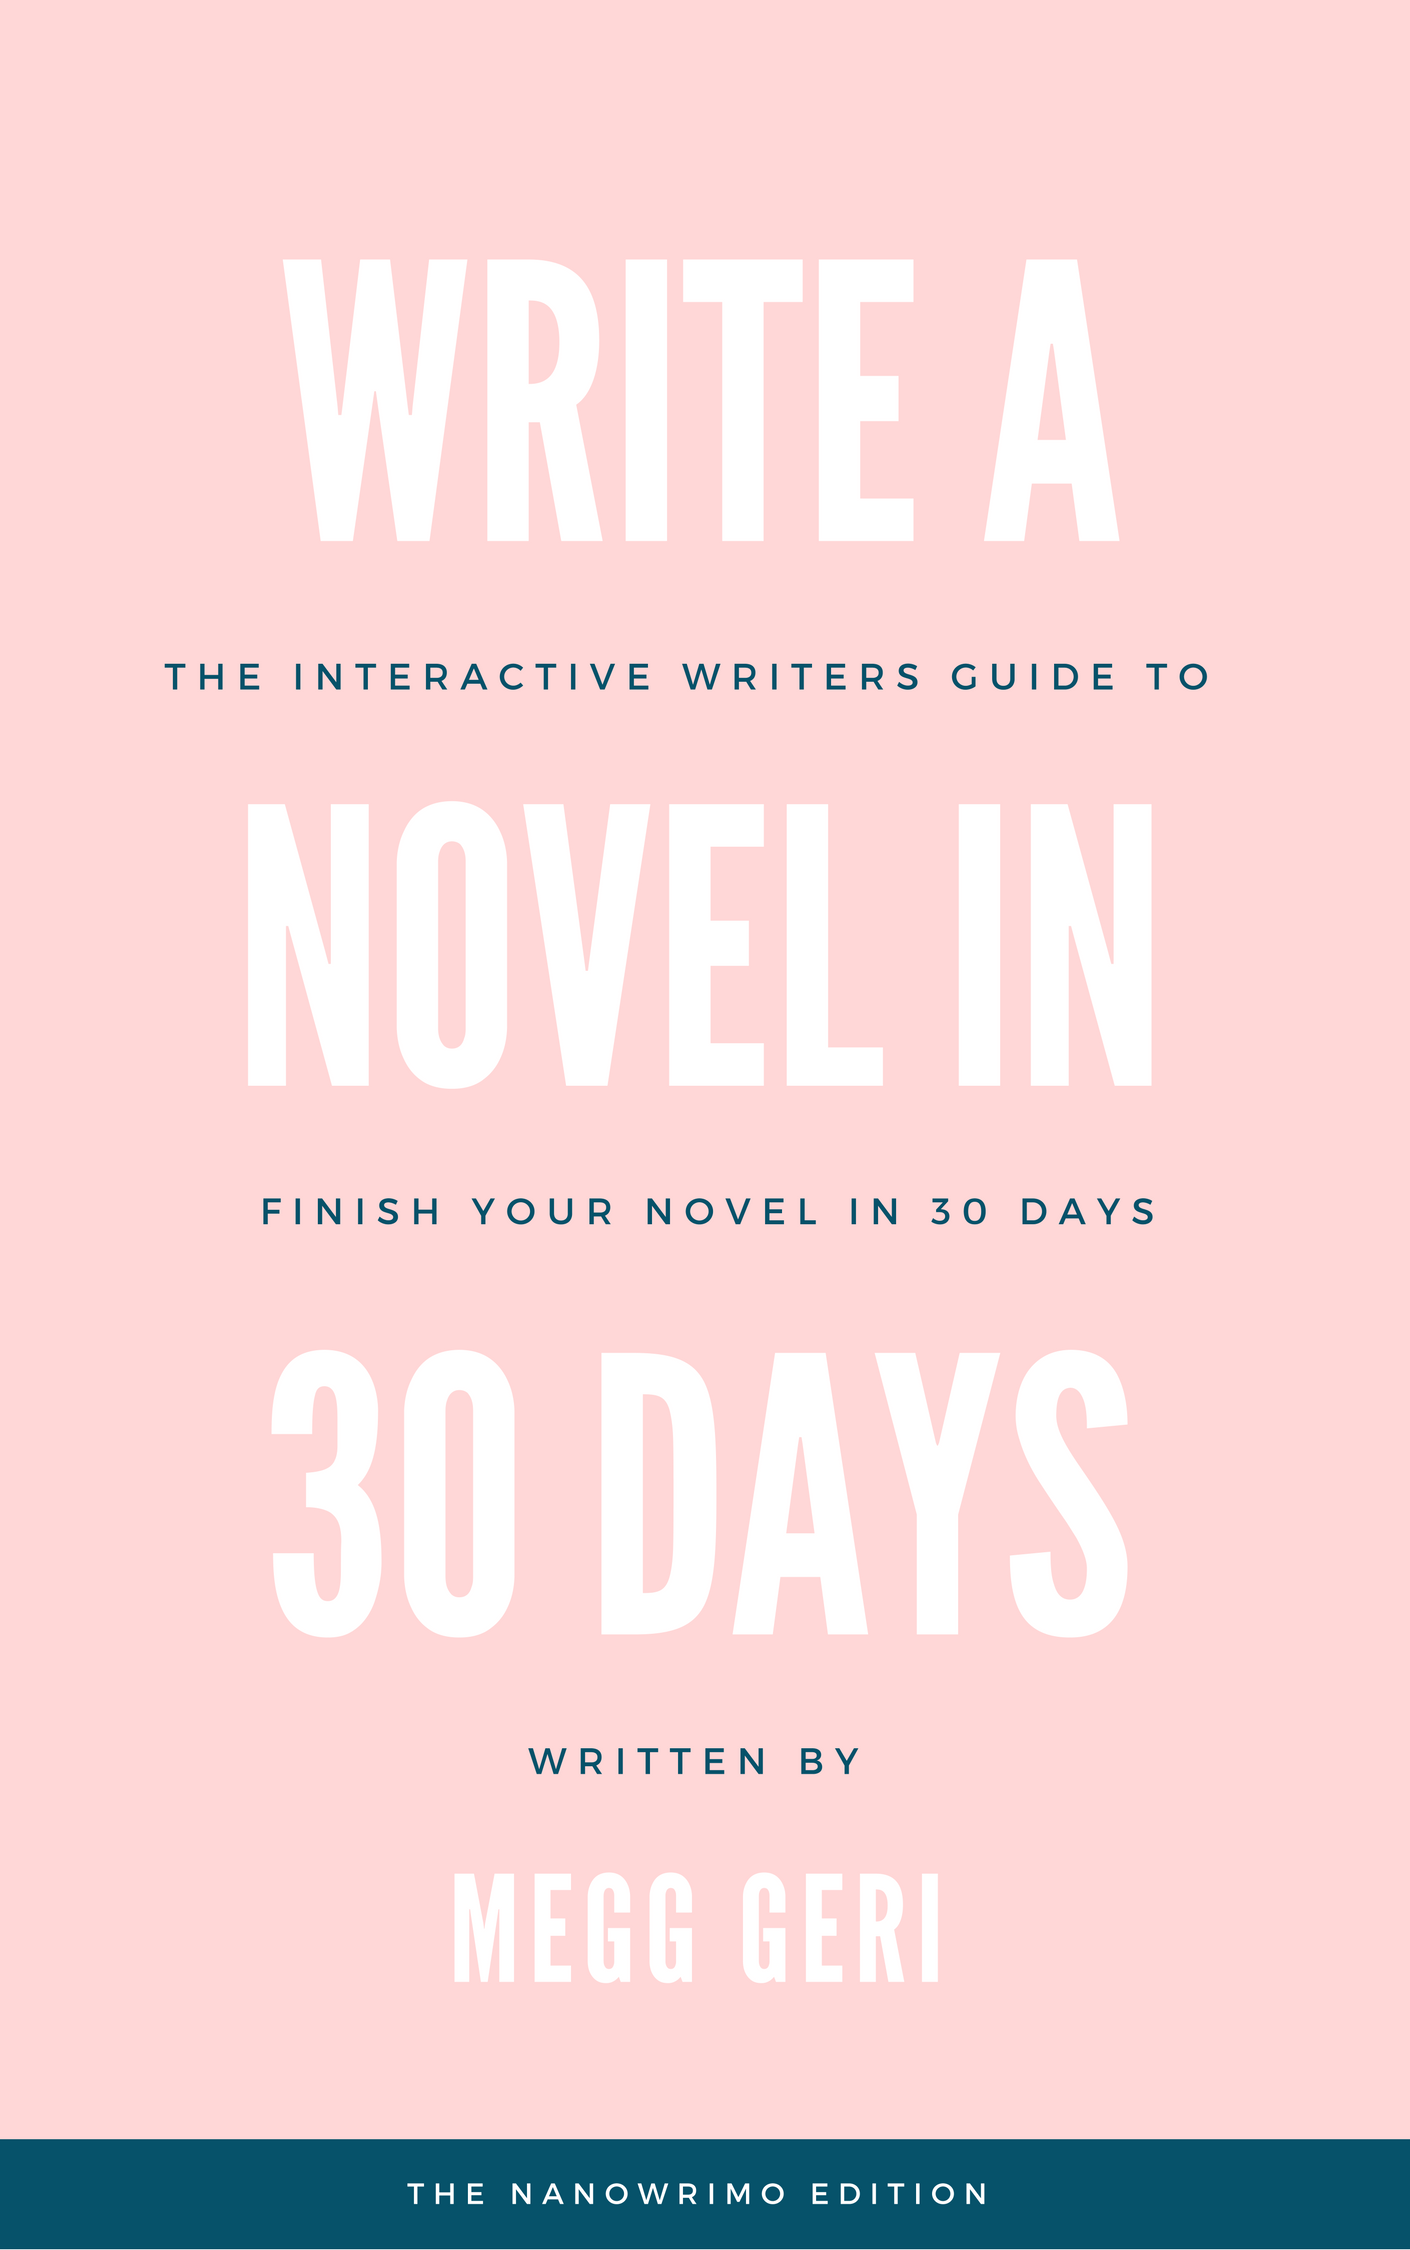 WRITE A NOVEL IN 30 DAYS ~ NANOWRIMO EDITION